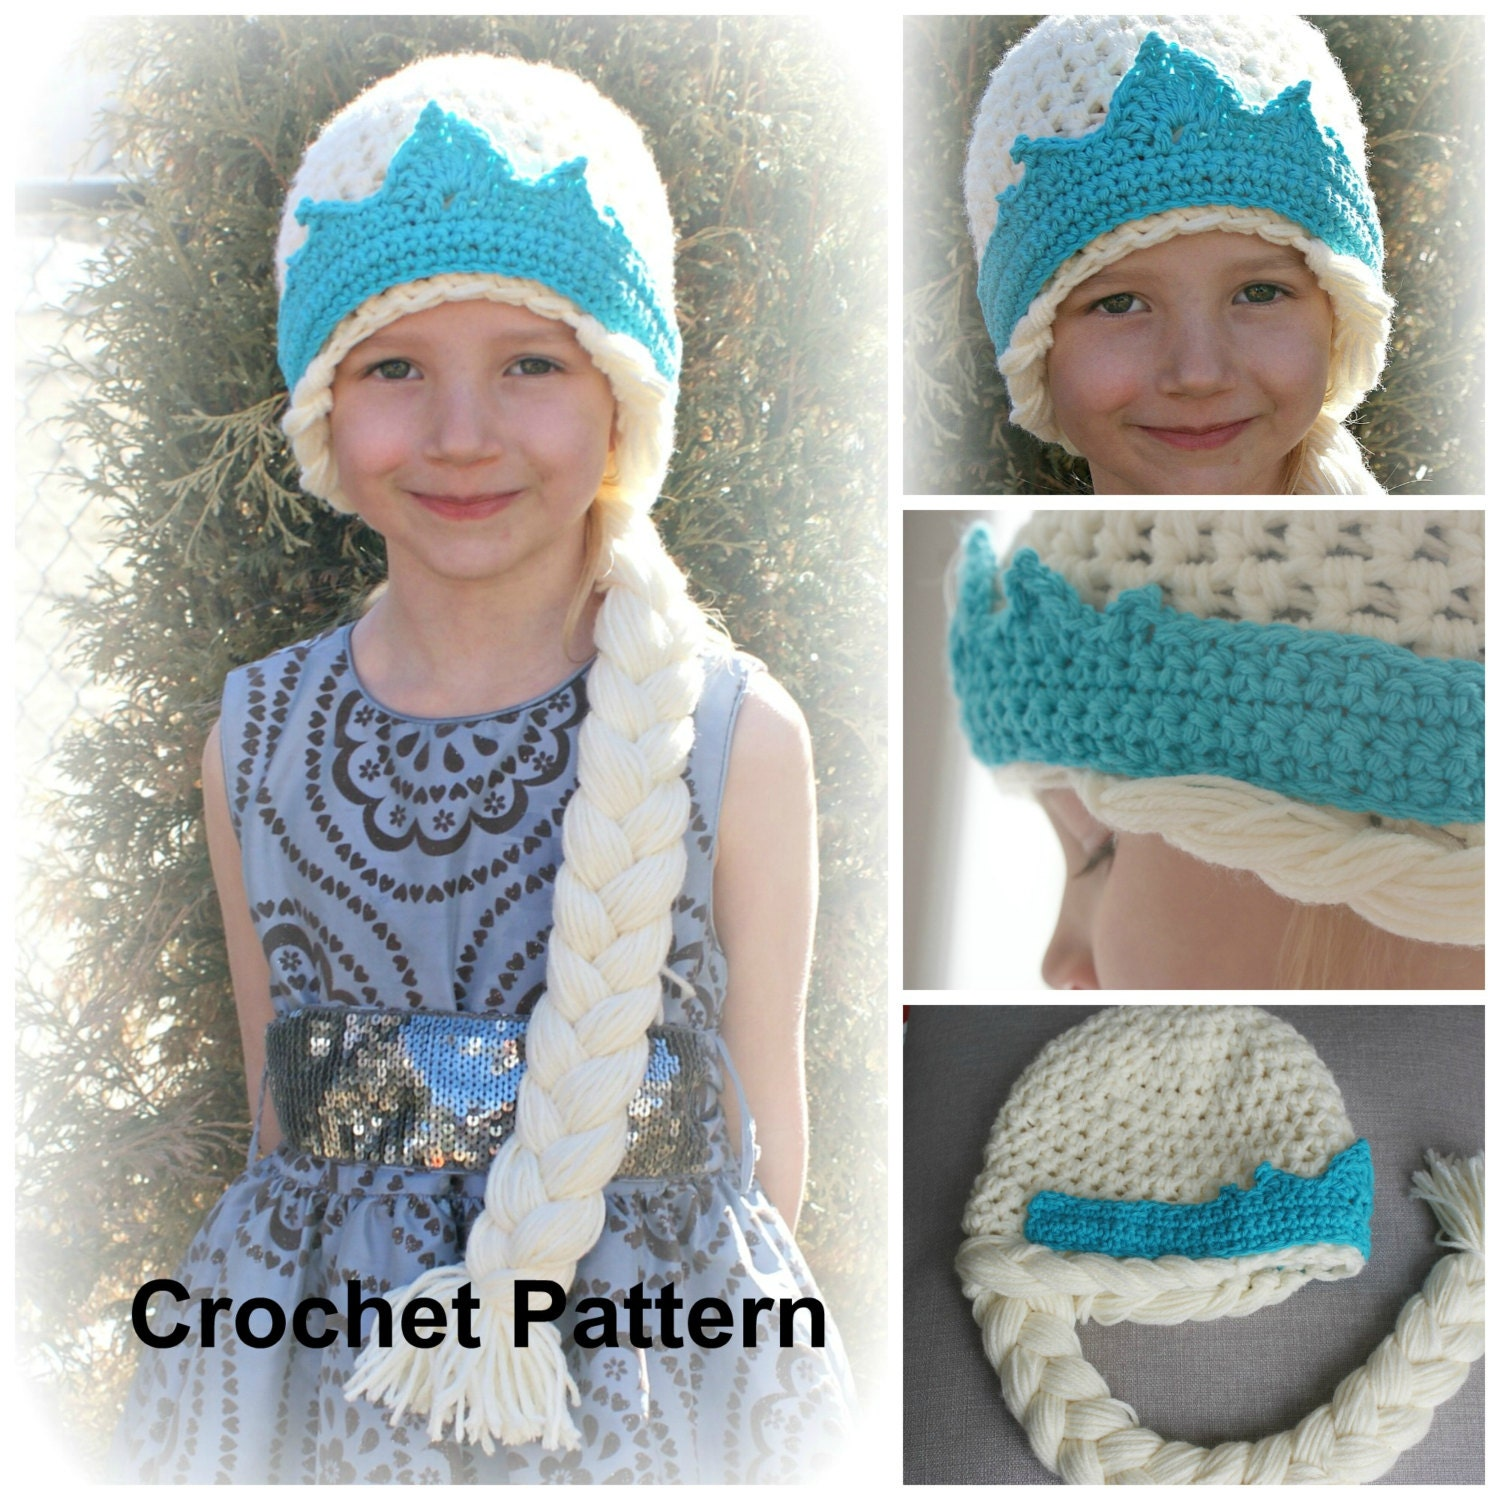 Free Crochet Pattern Frozen Elsa Hat : Elsa Crocheted Hat Pattern Party Invitations Ideas